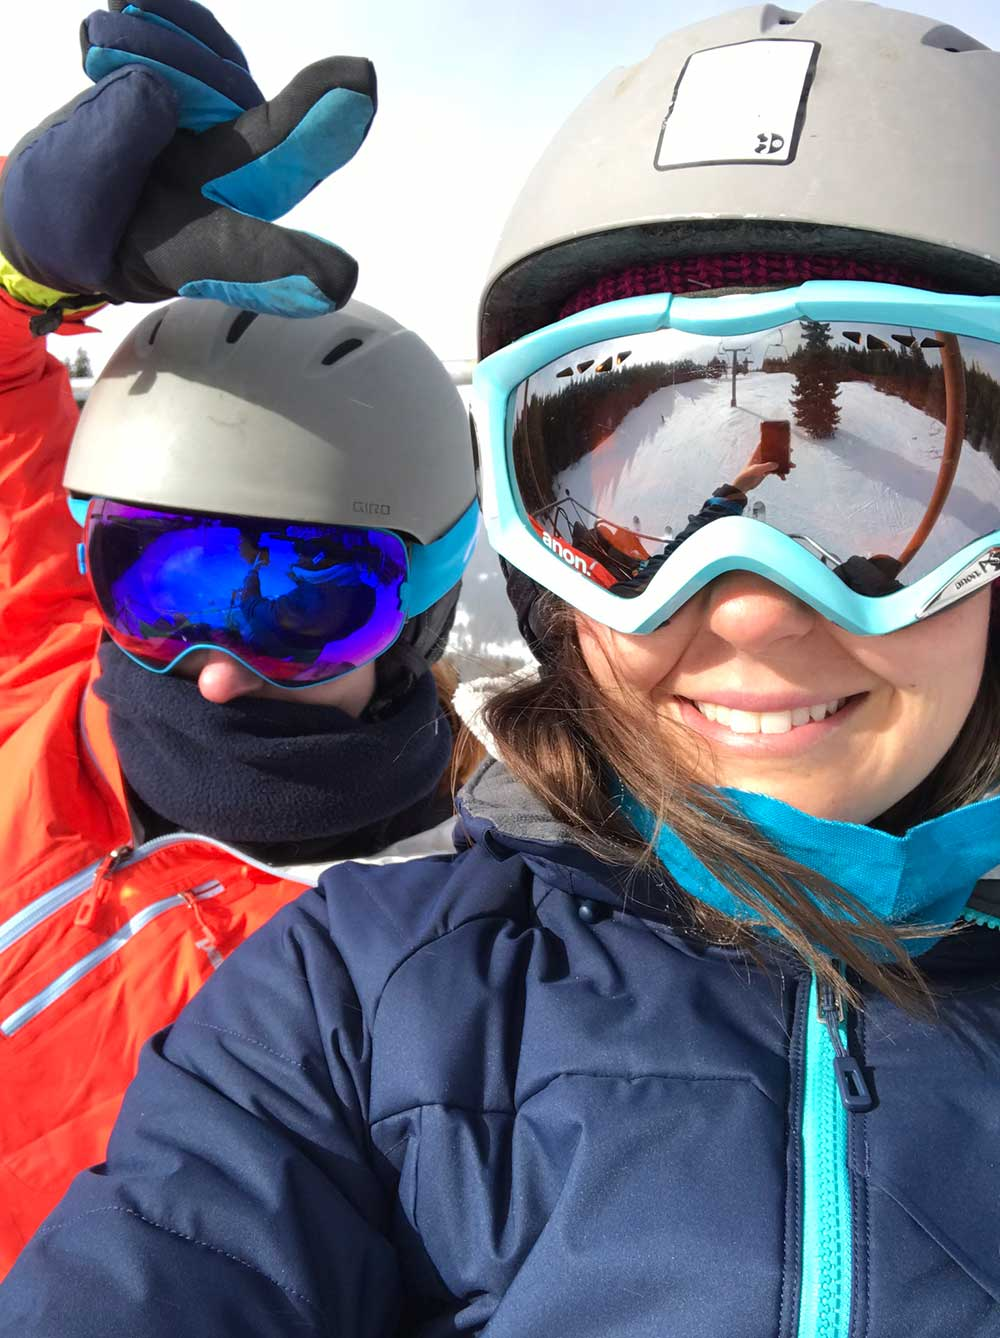 Two friends pose in helmets and goggles while skiing at Copper Mountain